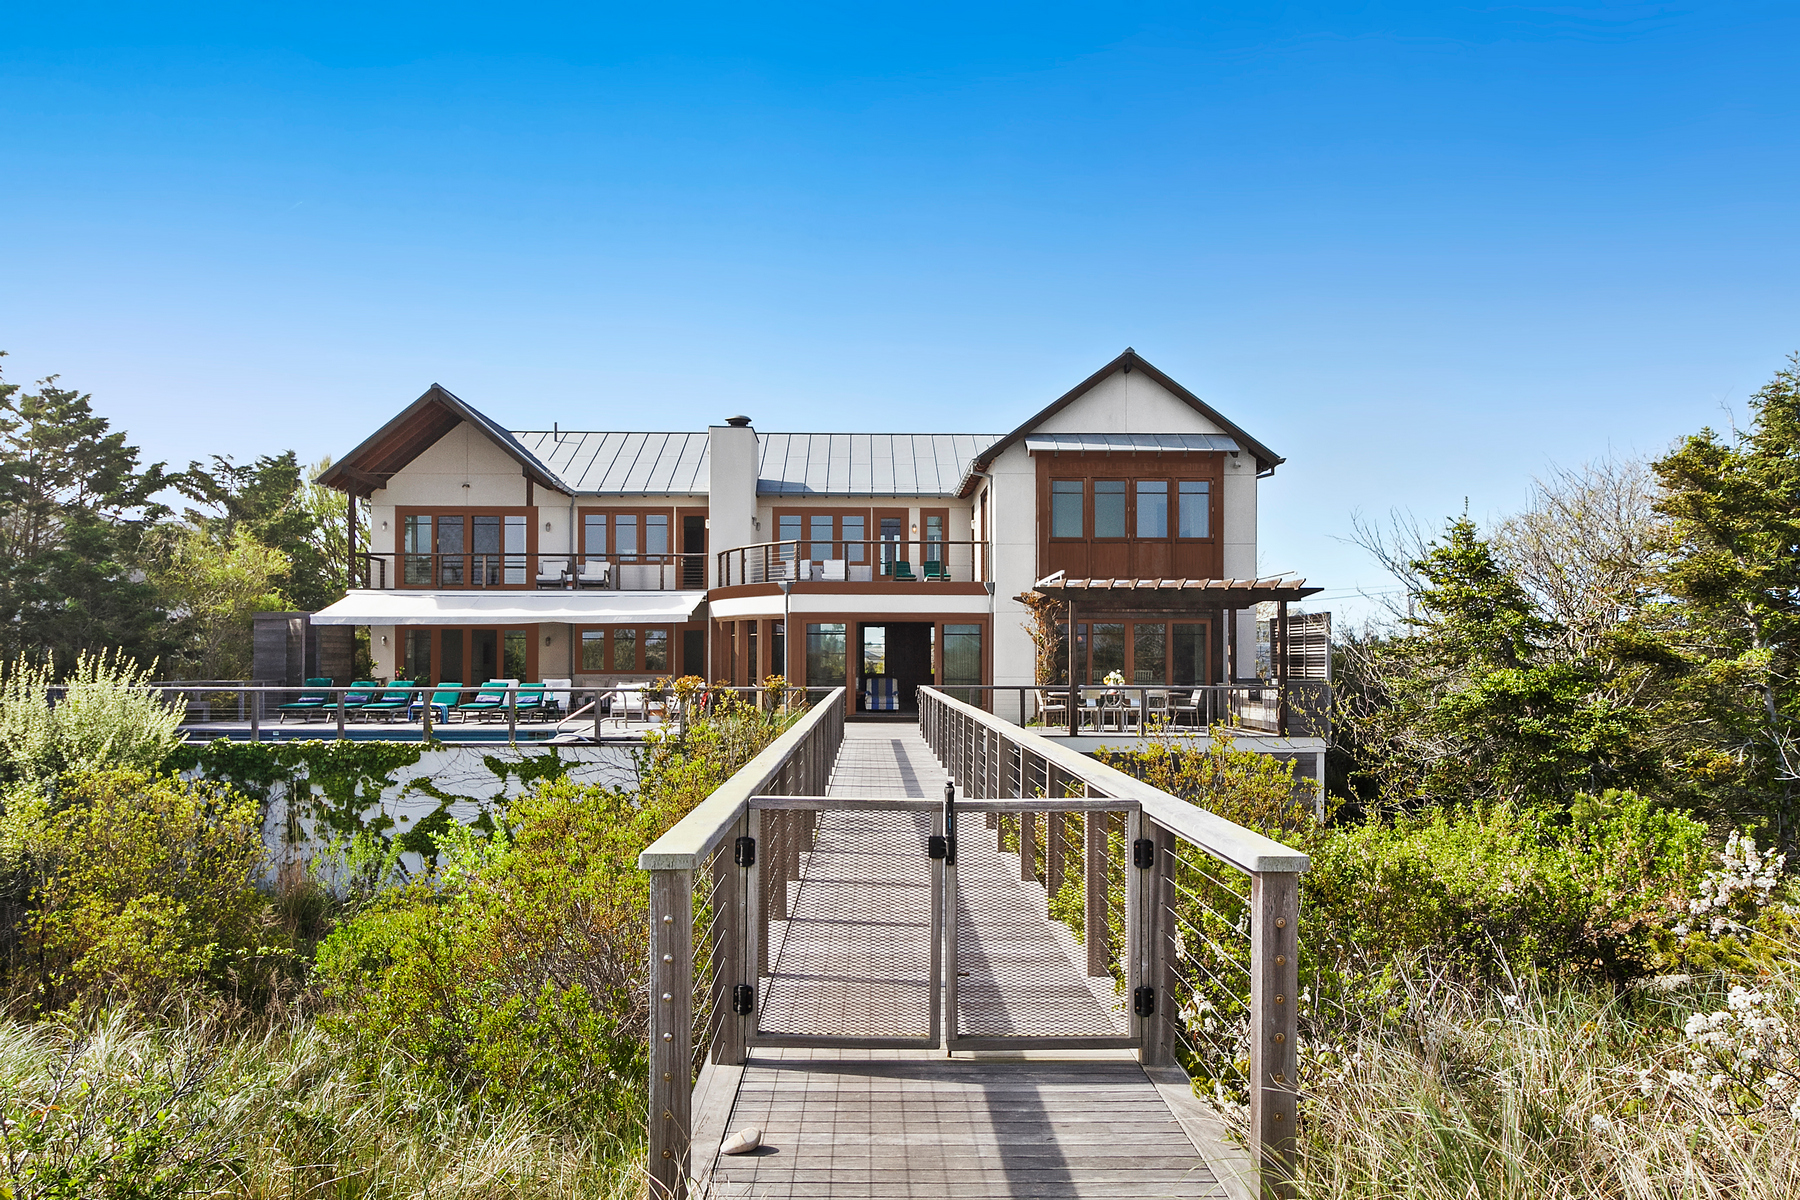 Single Family Homes for Sale at Westhampton Bch 127 Dune Road Westhampton Beach, New York 11978 United States